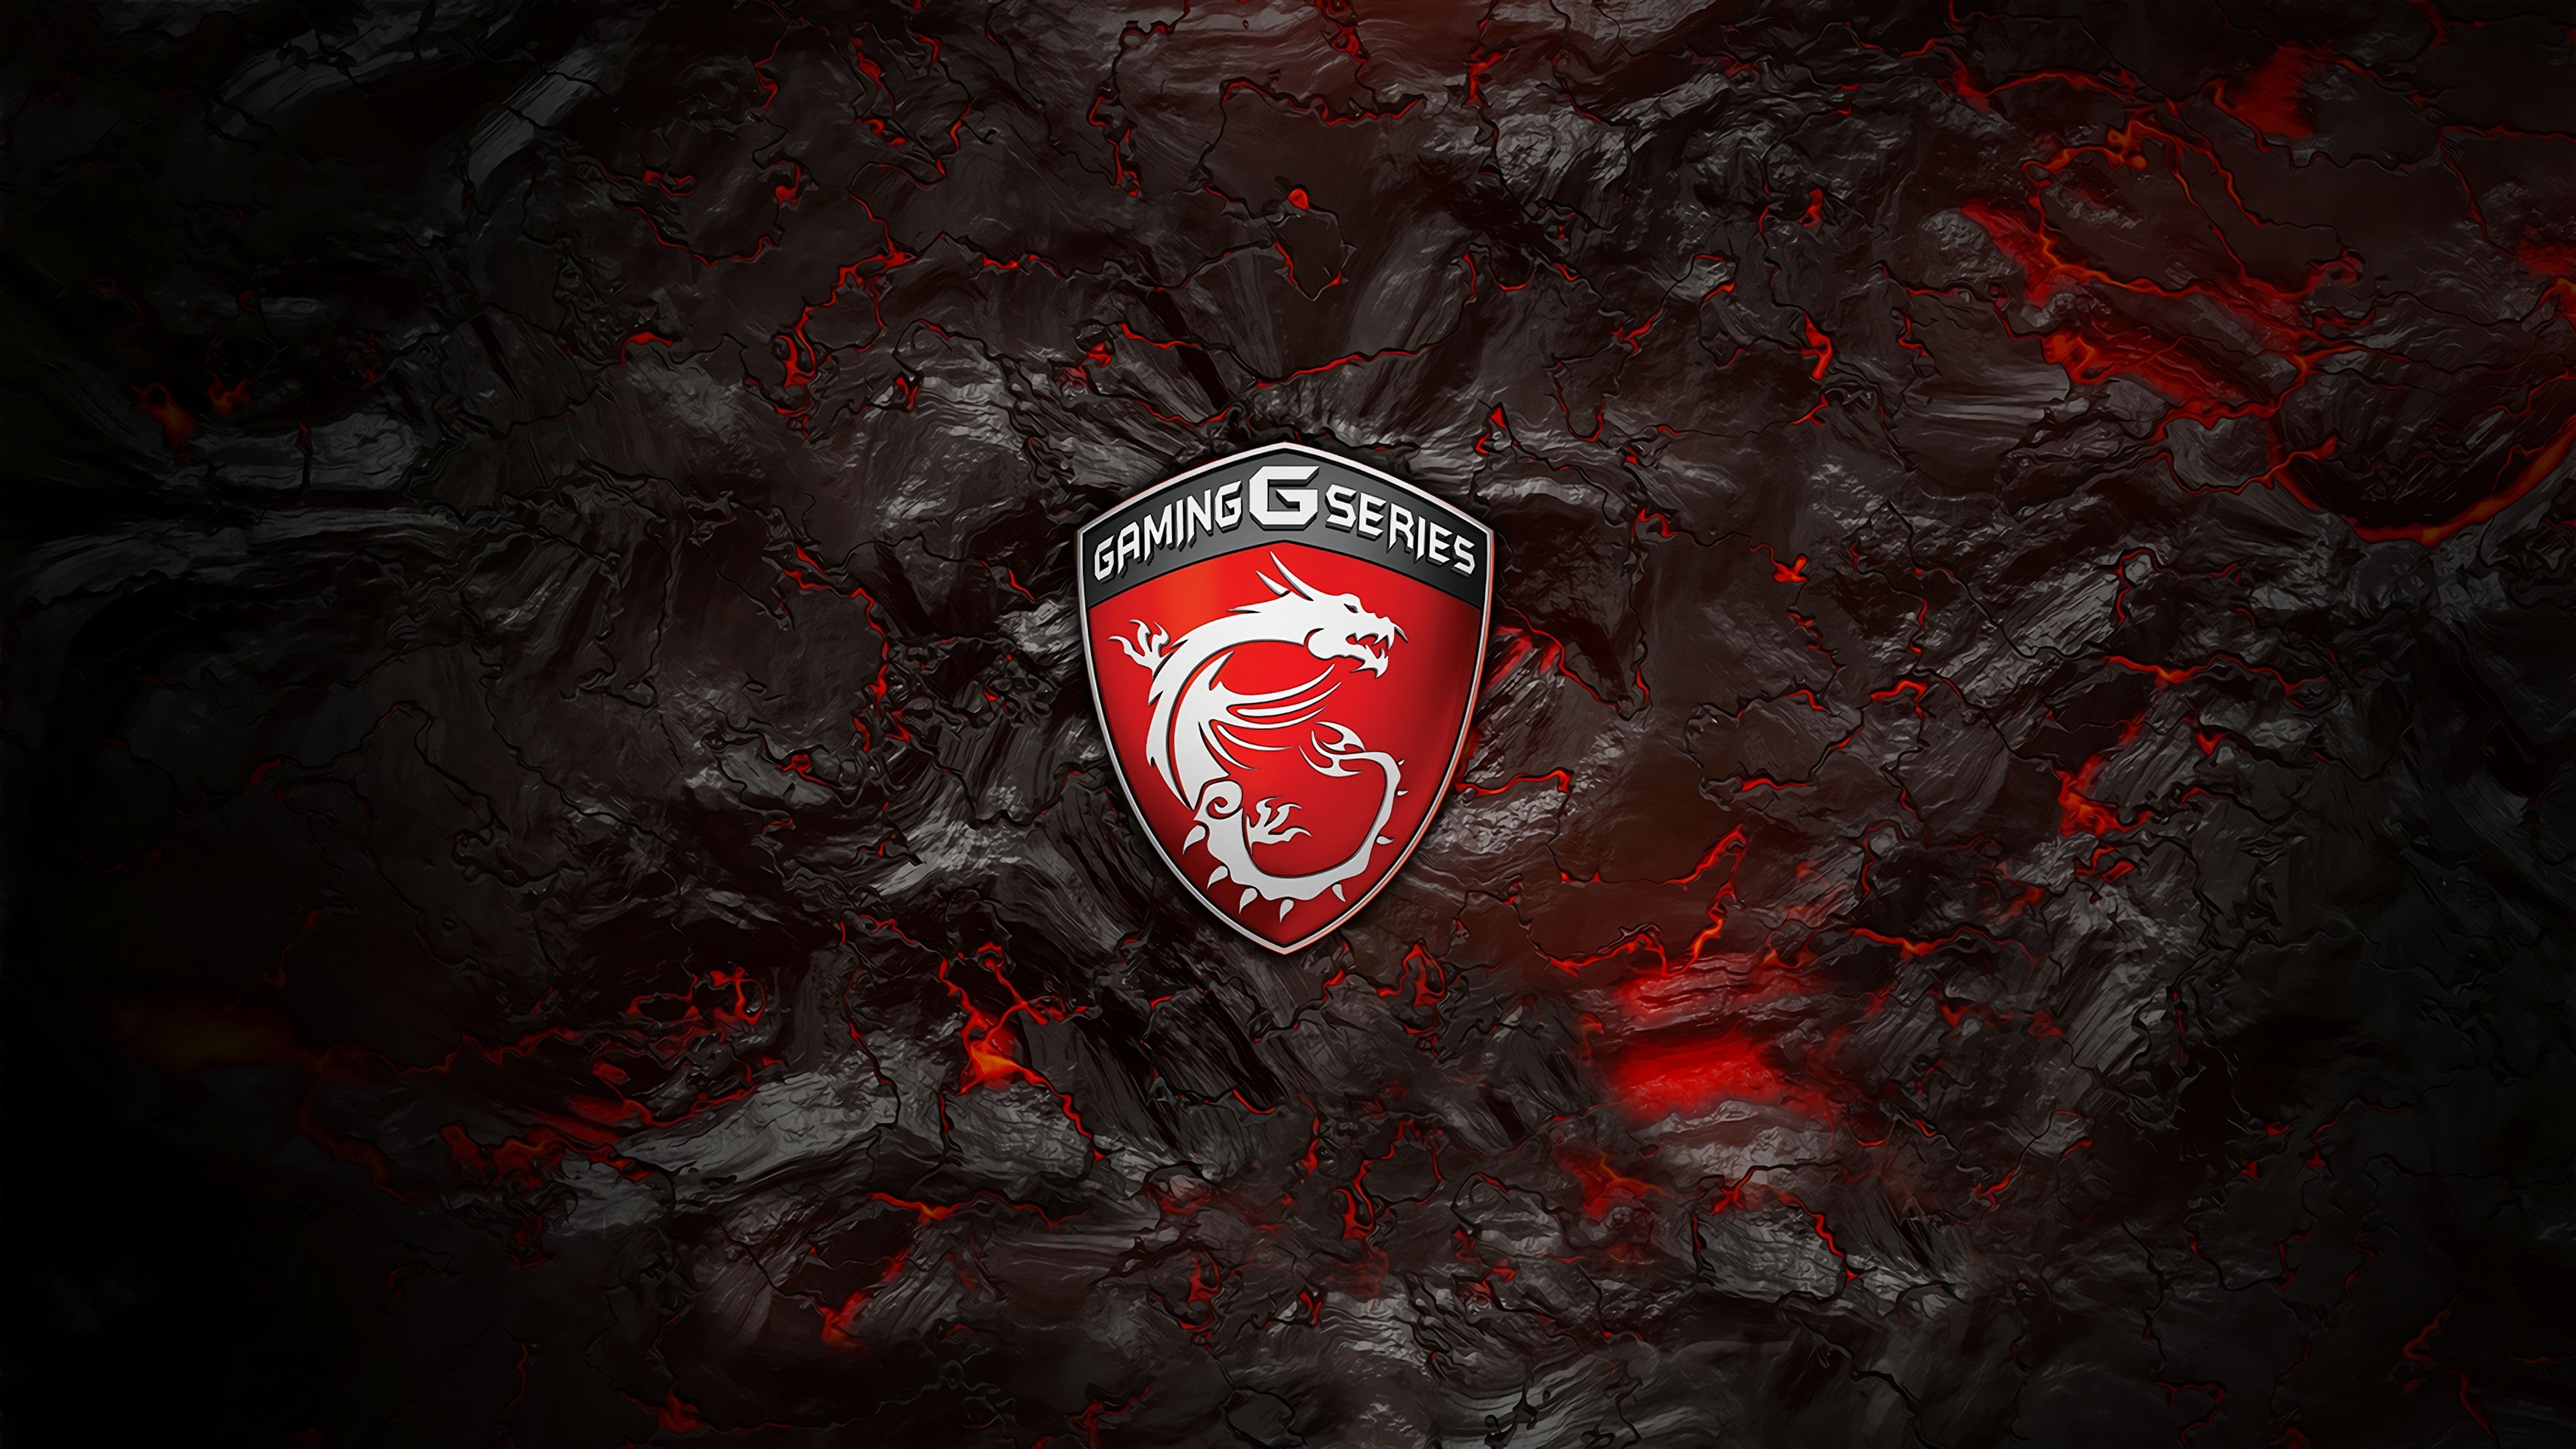 Msi Gaming G Series Logo Lava Background 4k Wallpaper Msi In 2019